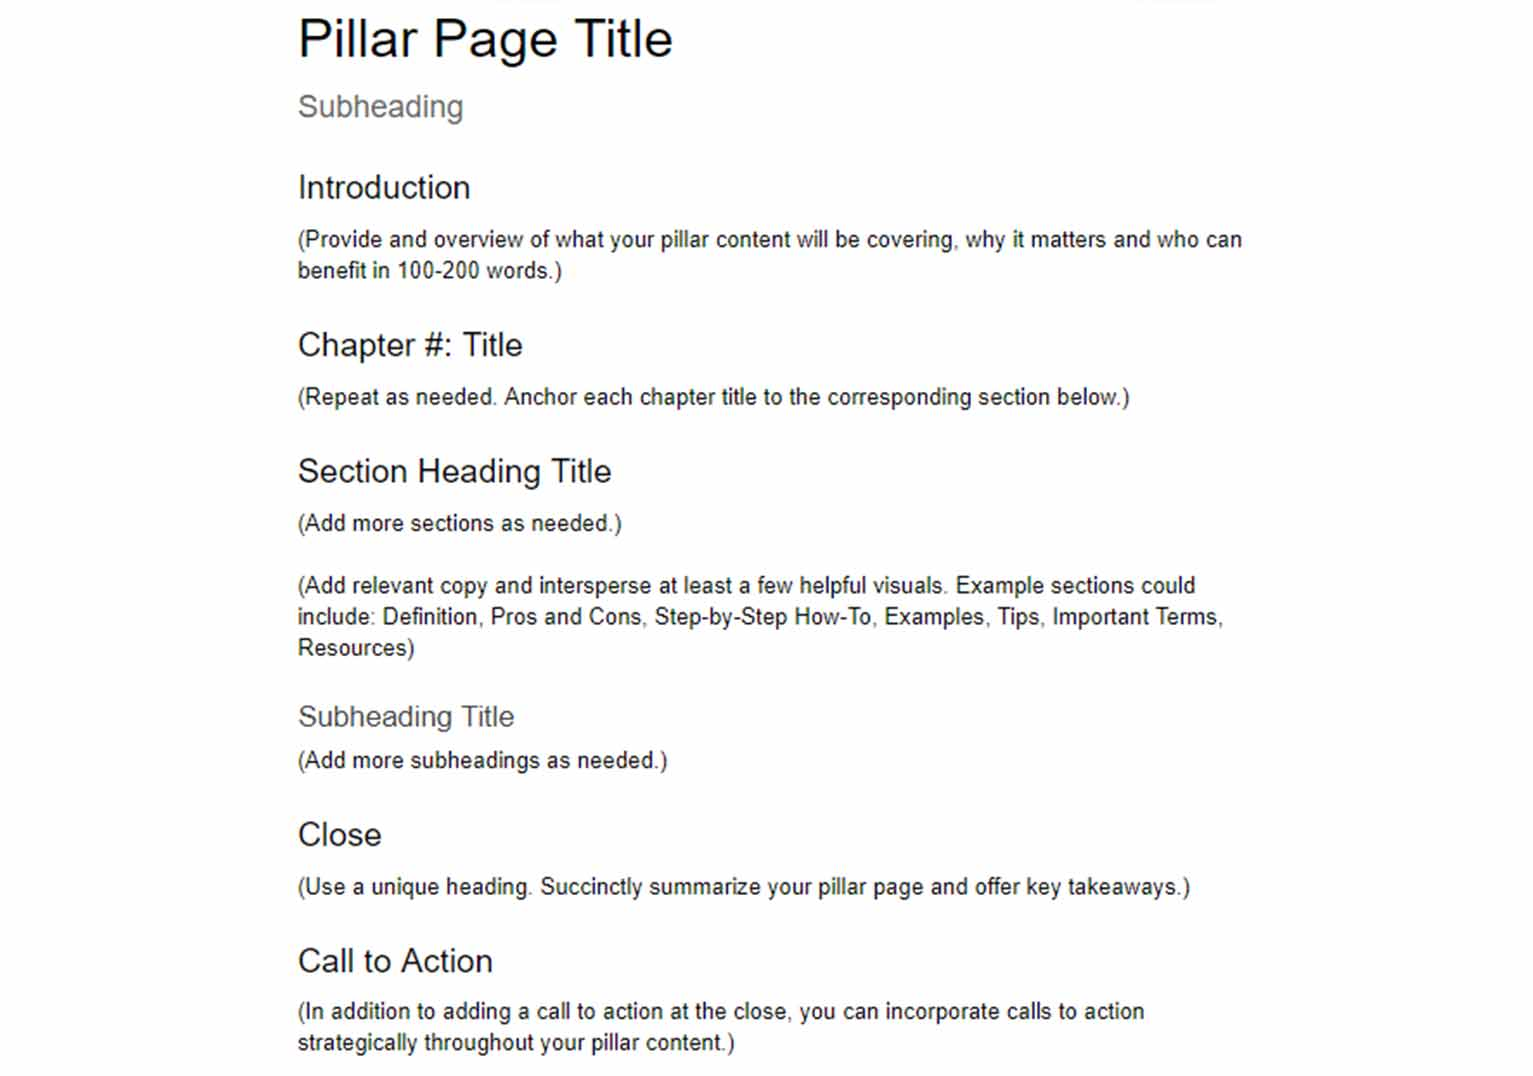 Pillar page template featuring an introduction, chapters, heading titles, subheadings, a close and calls to action.